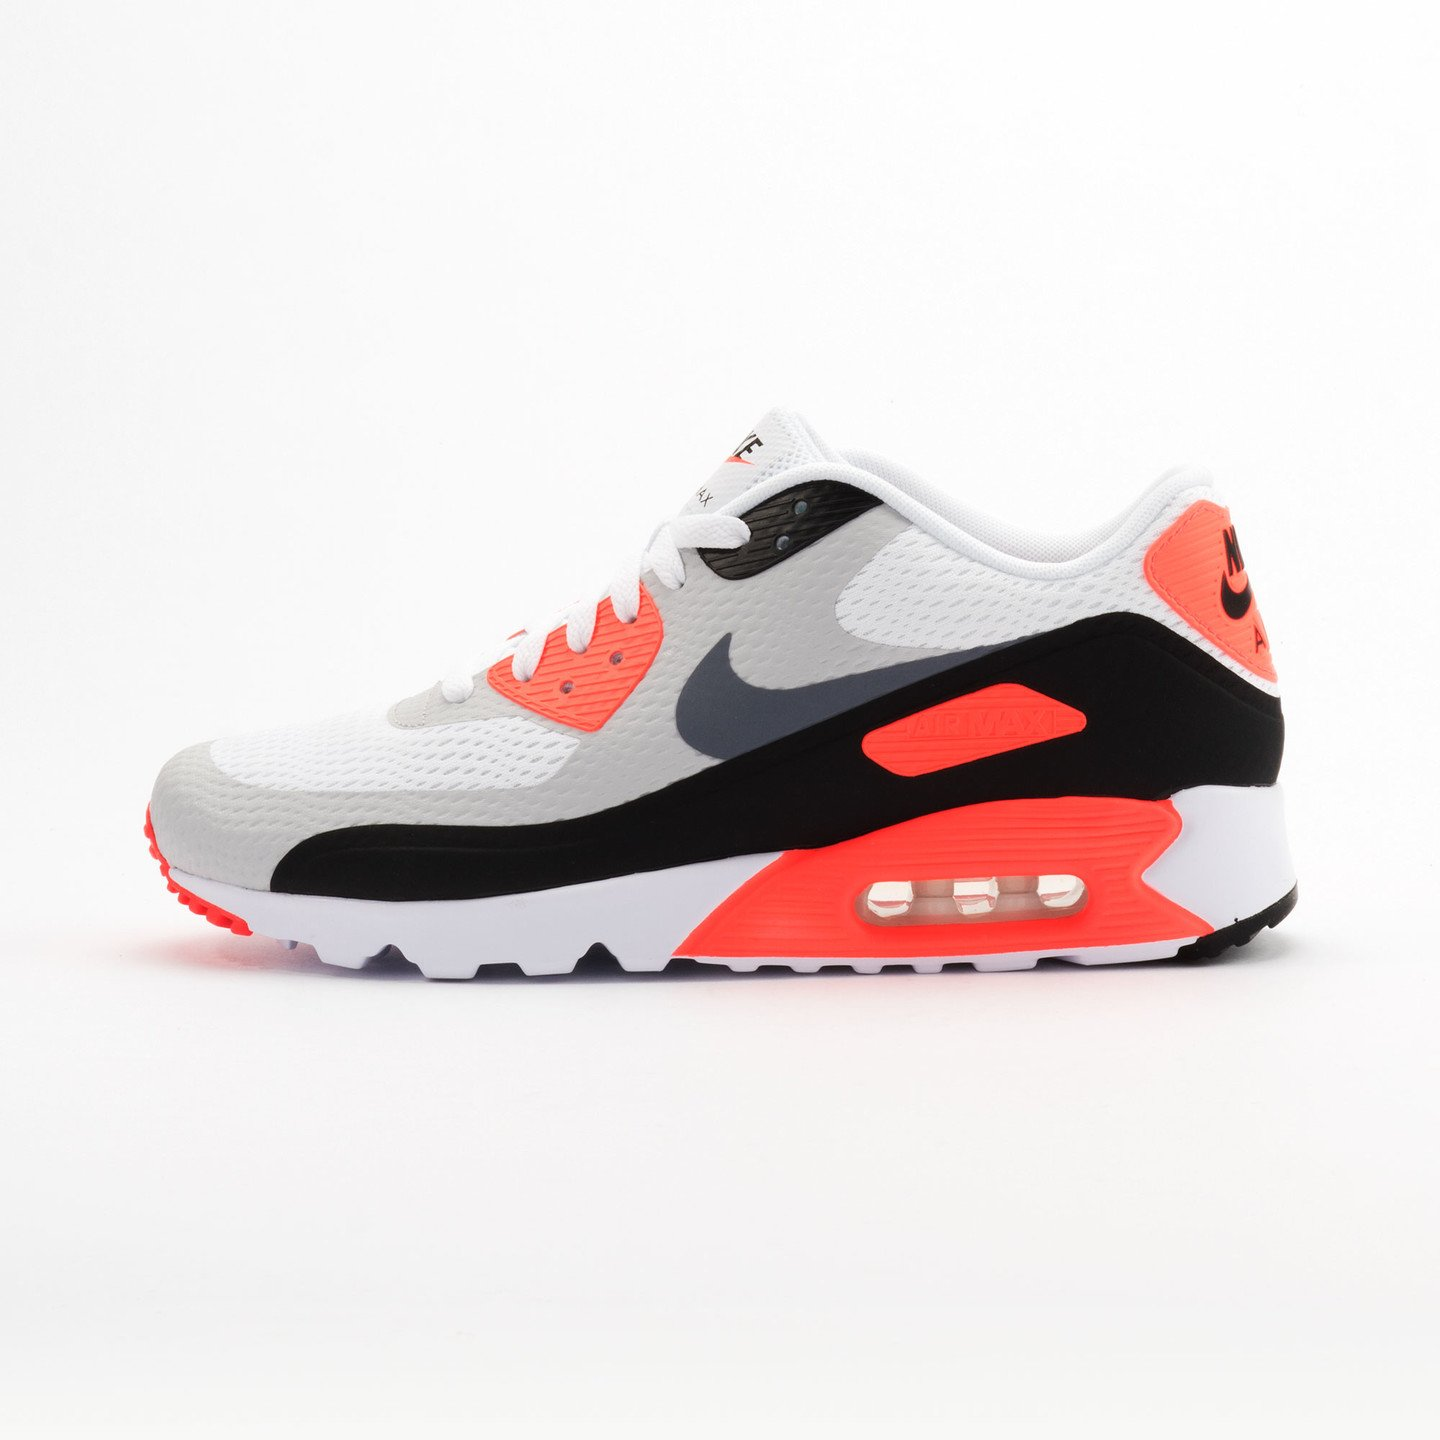 Nike Air Max 90 OG Essential White / Black / Infrared 819474-106-44